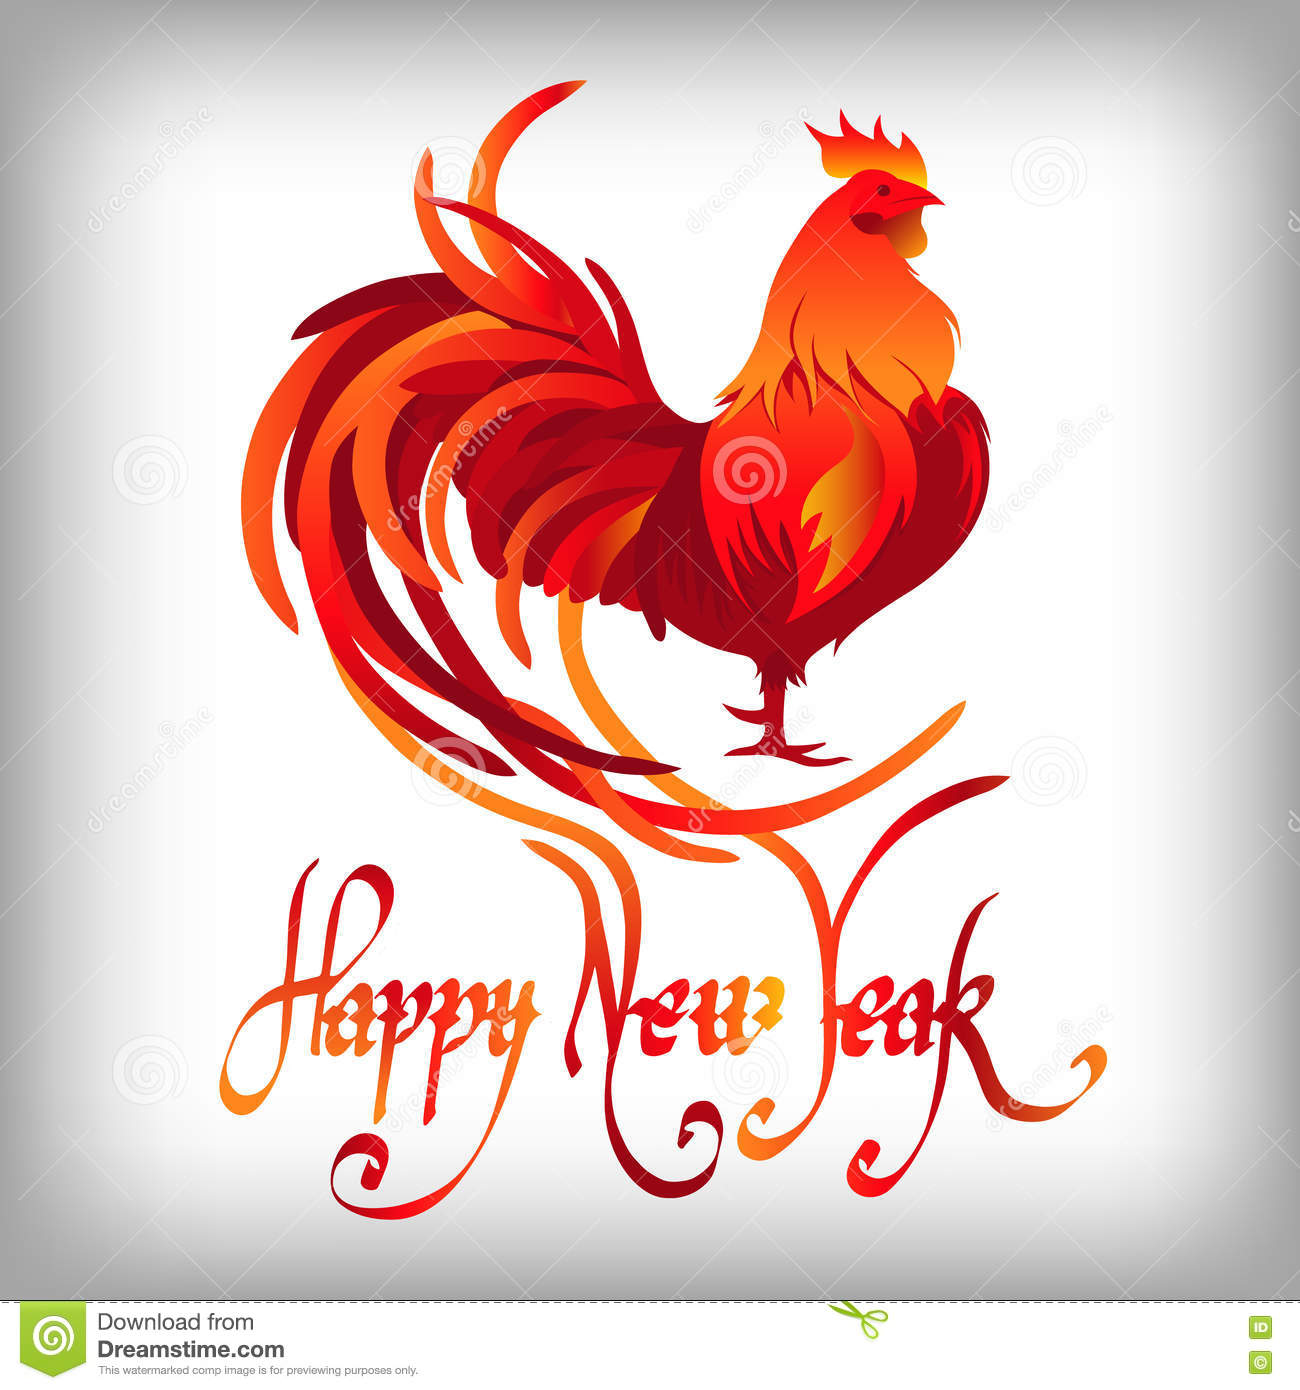 New year 2017 greeting pictures year of rooster happy chinese new year - Red Rooster Happy Chinese New Year 2017 Vector Stock Vector